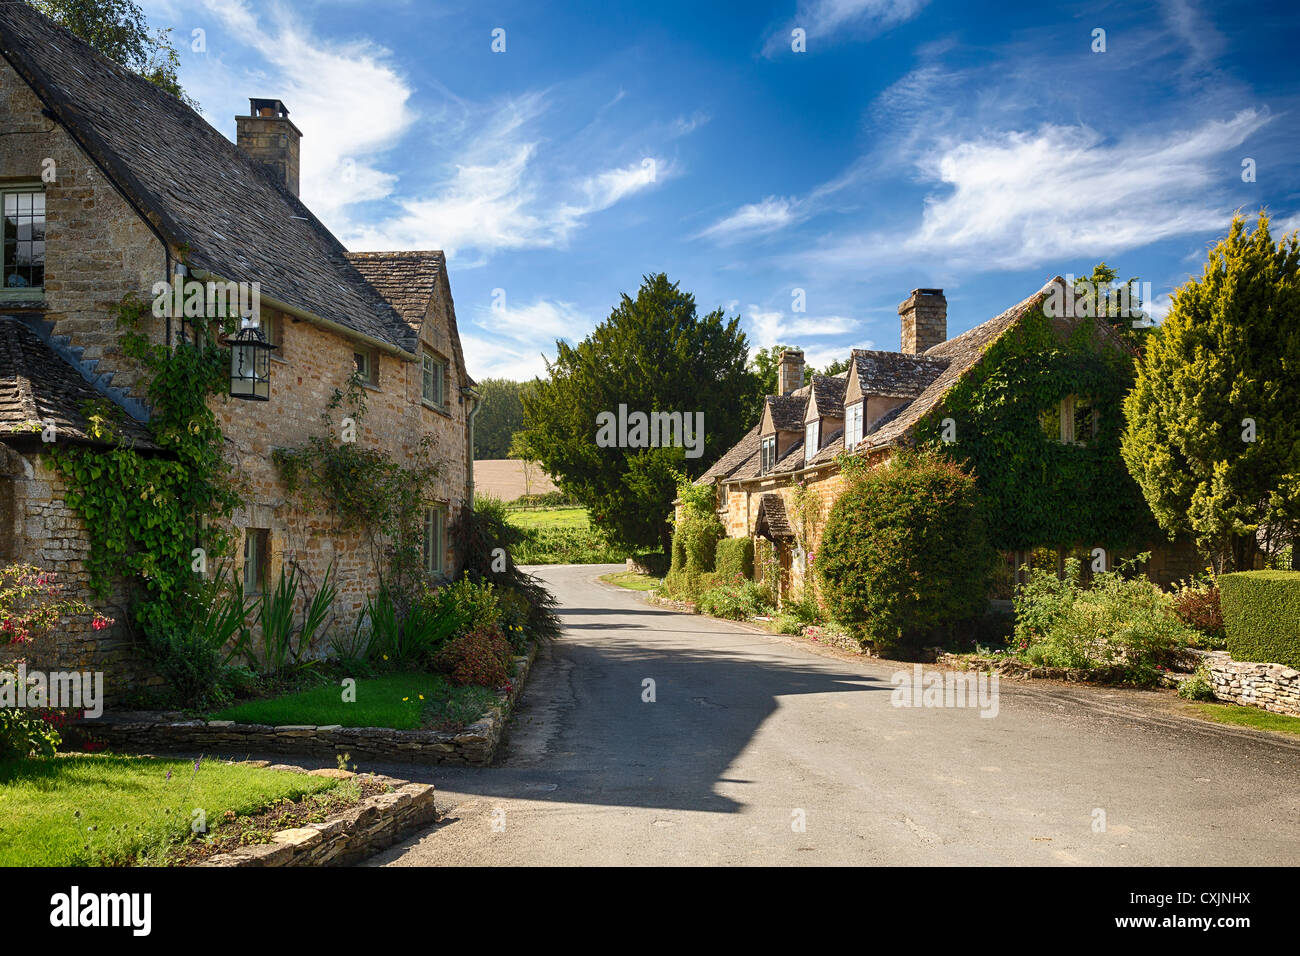 Beautiful old cotswolds stone houses in the pretty old village of Icomb, Gloucestershire, England, UK Stock Photo